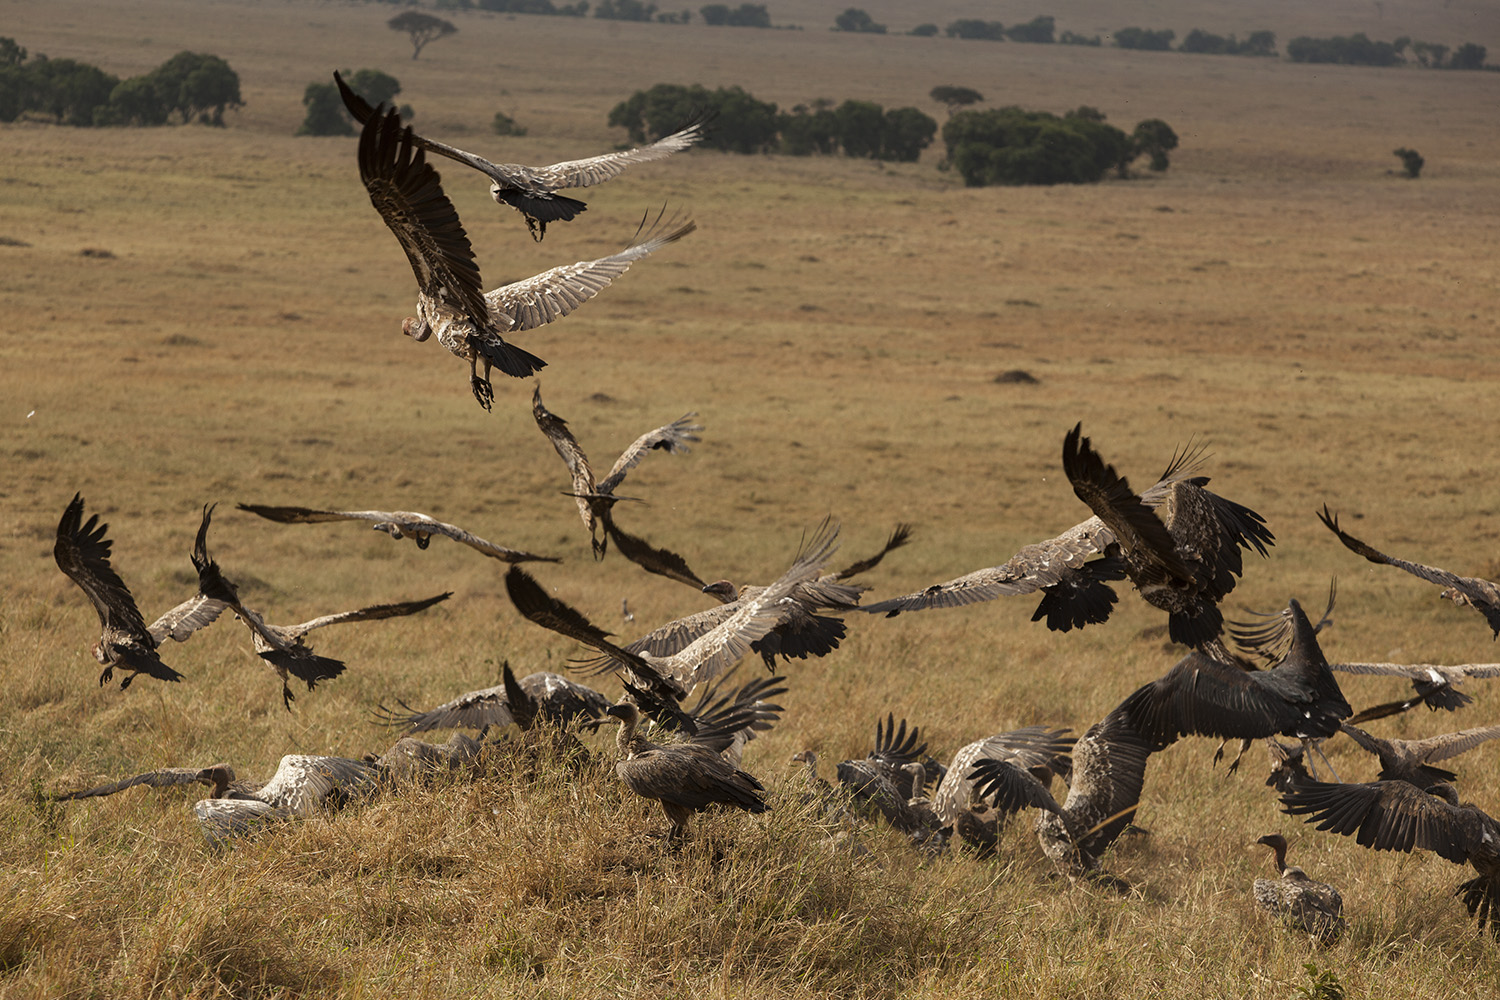 Vultures in flight in the maasai mara